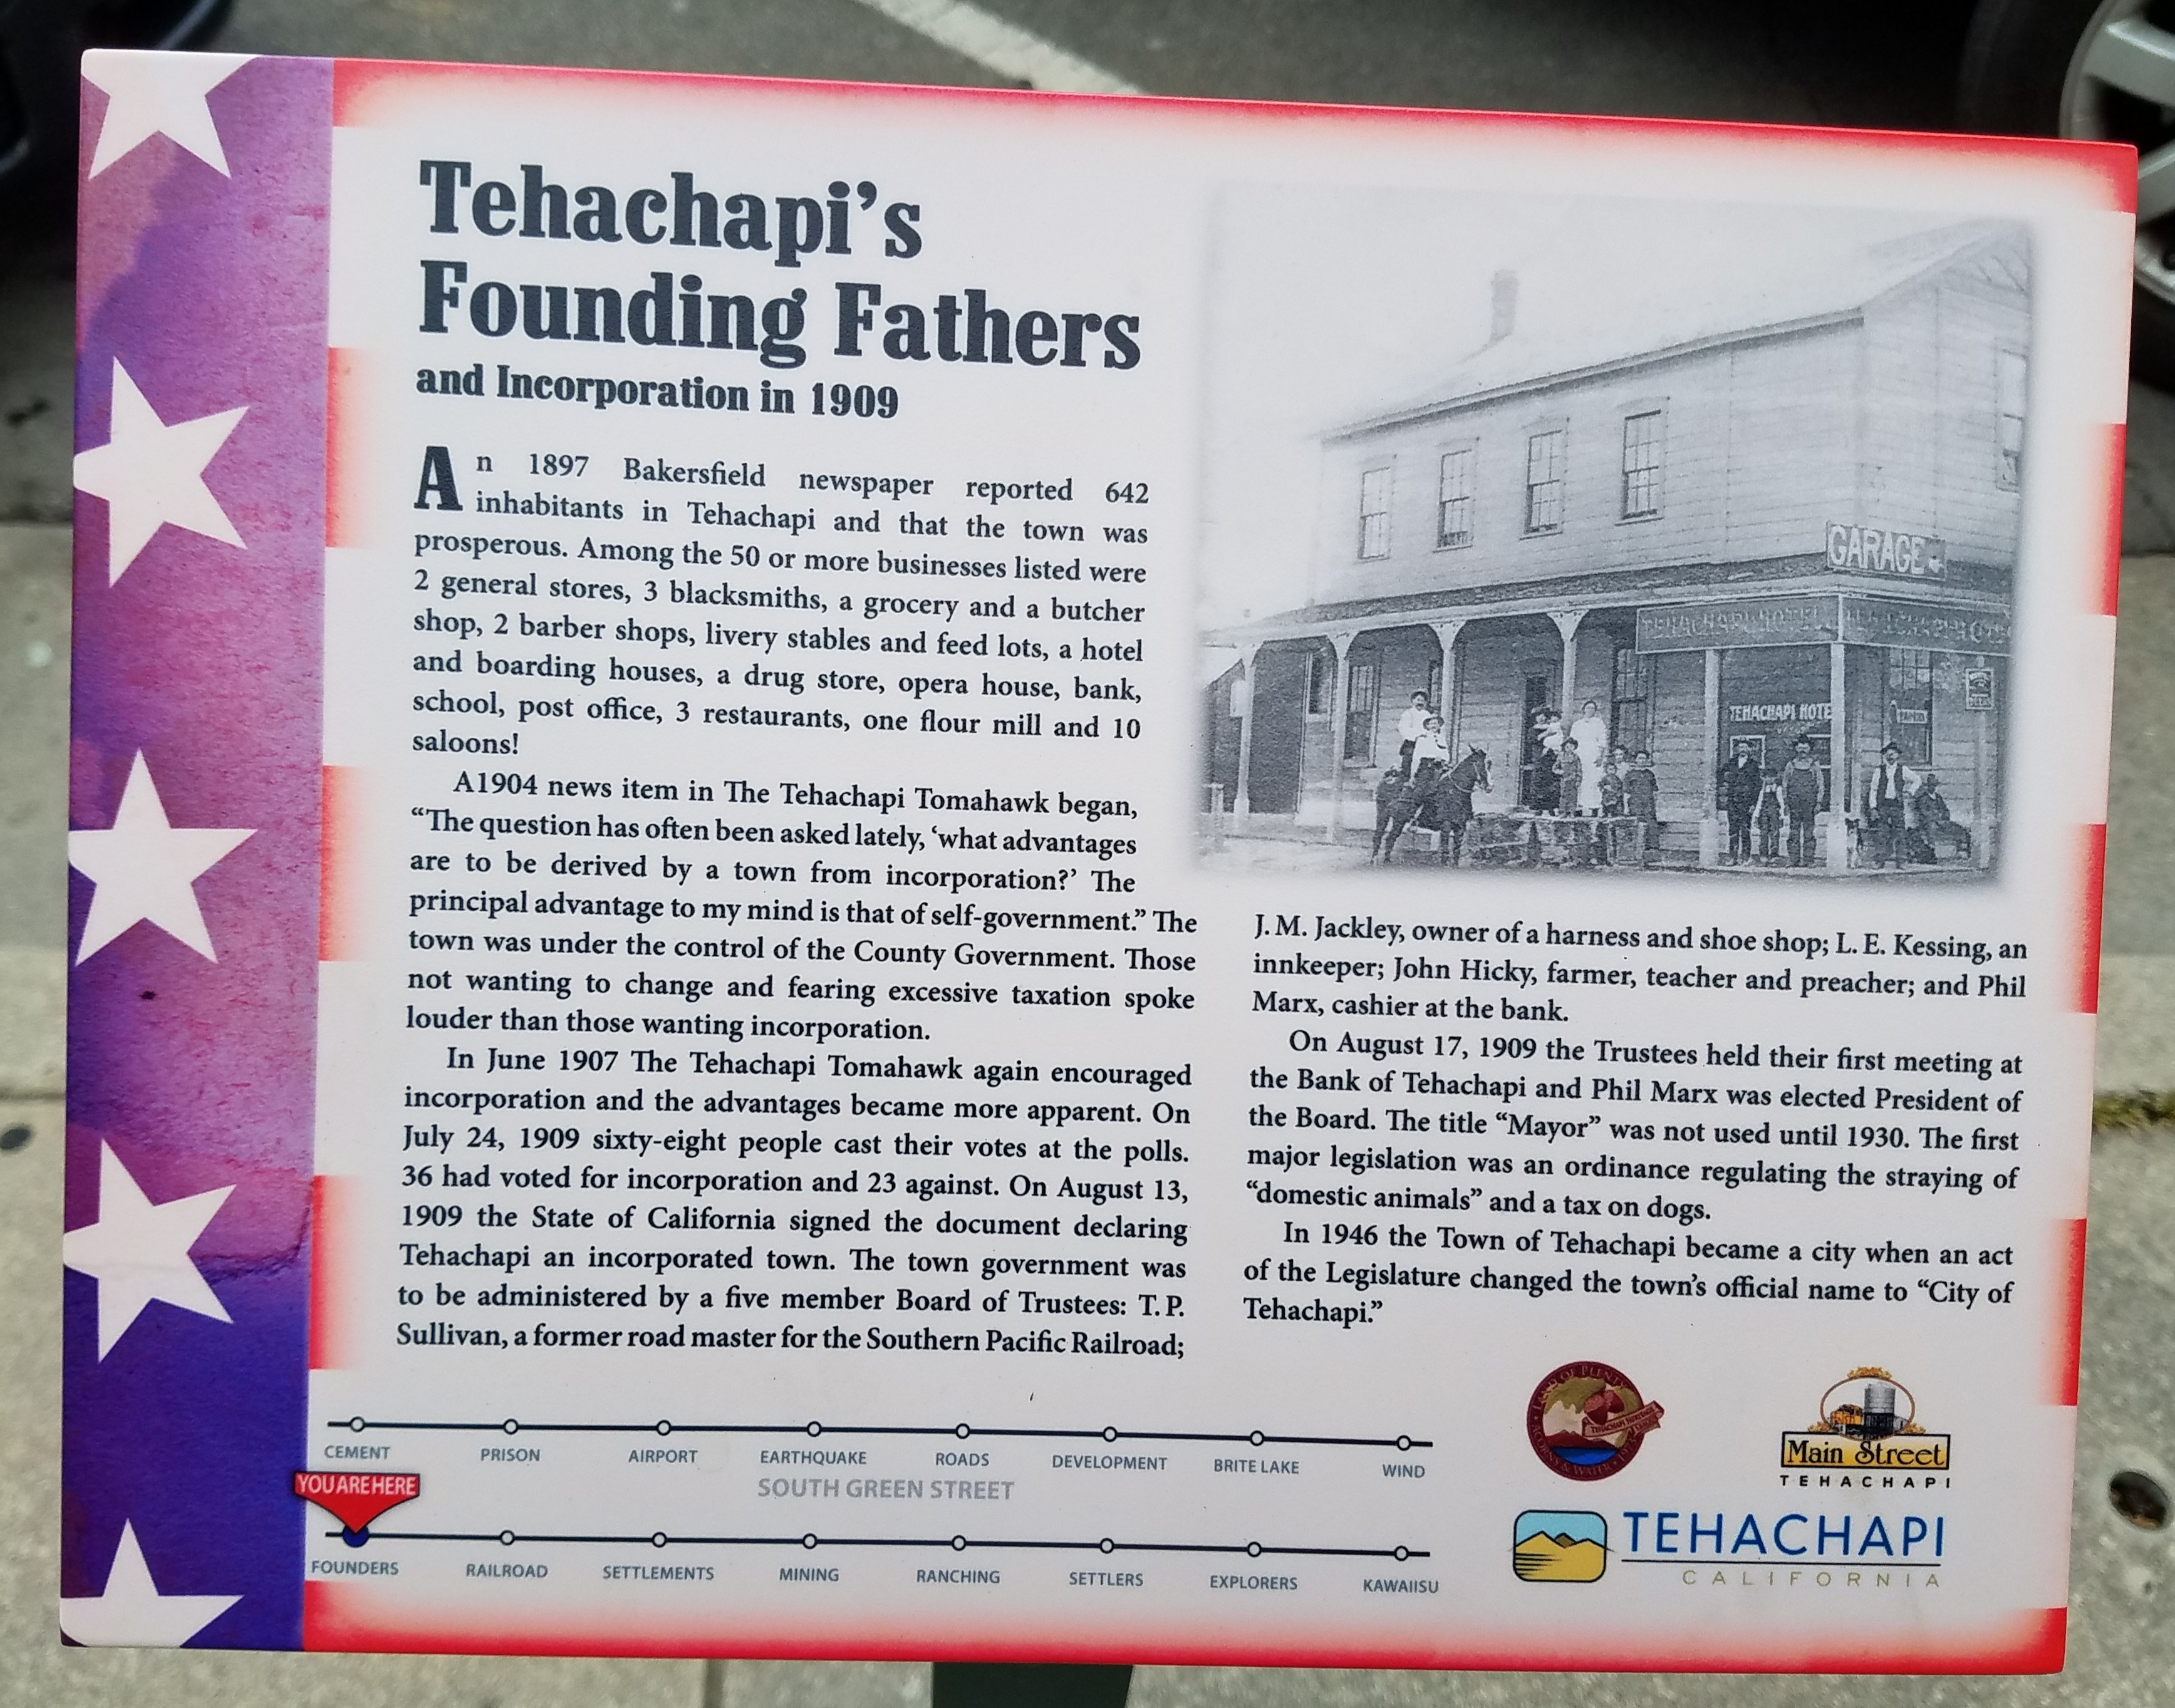 Tehachapi's Founding Fathers And Incorporation in 1909 Marker